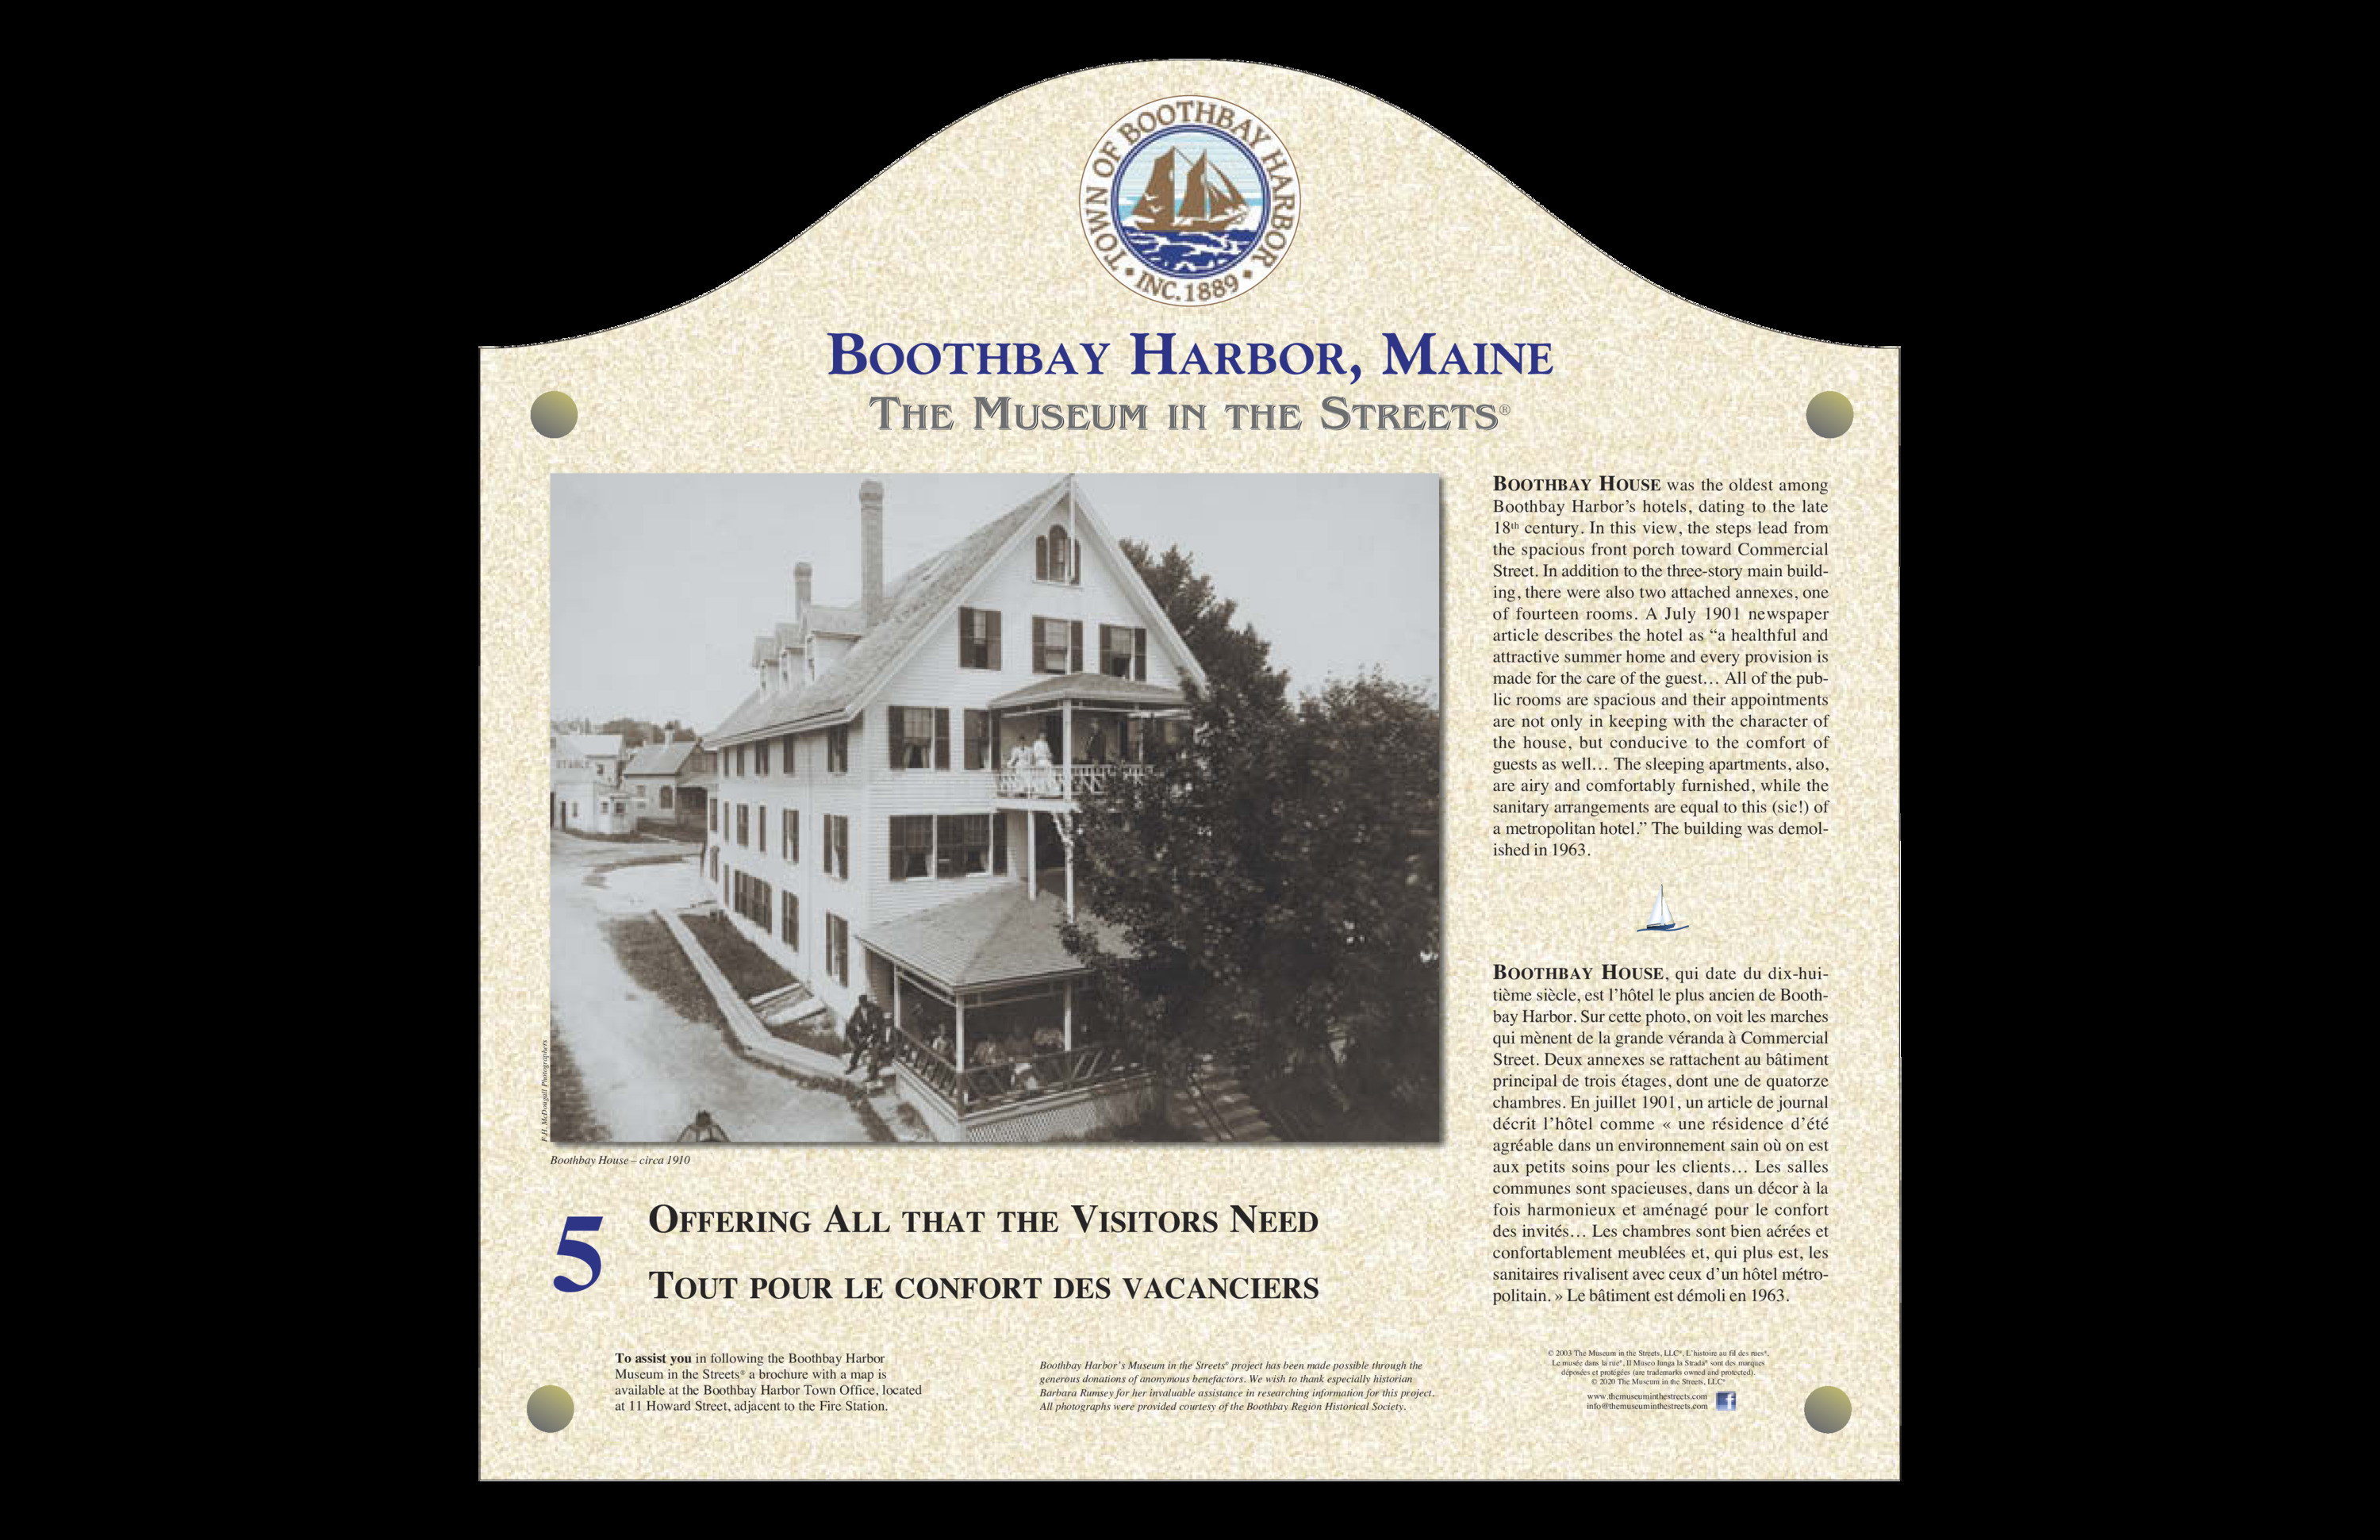 Boothbay Harbor Museum in the Streets